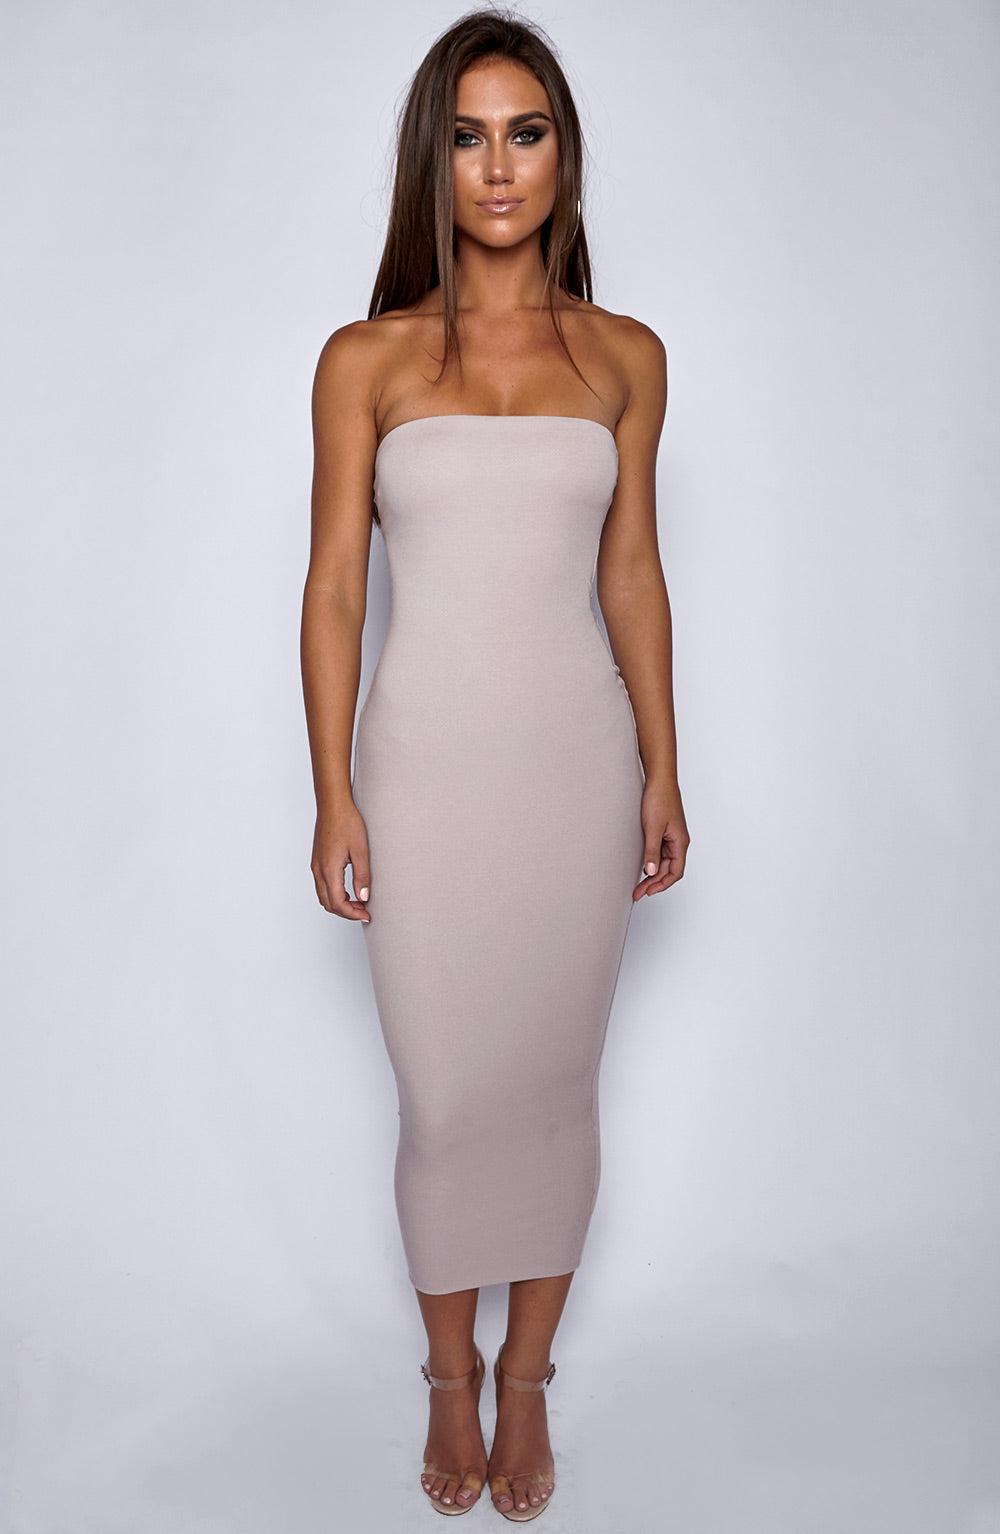 In Style Maxi Dress - Mocha